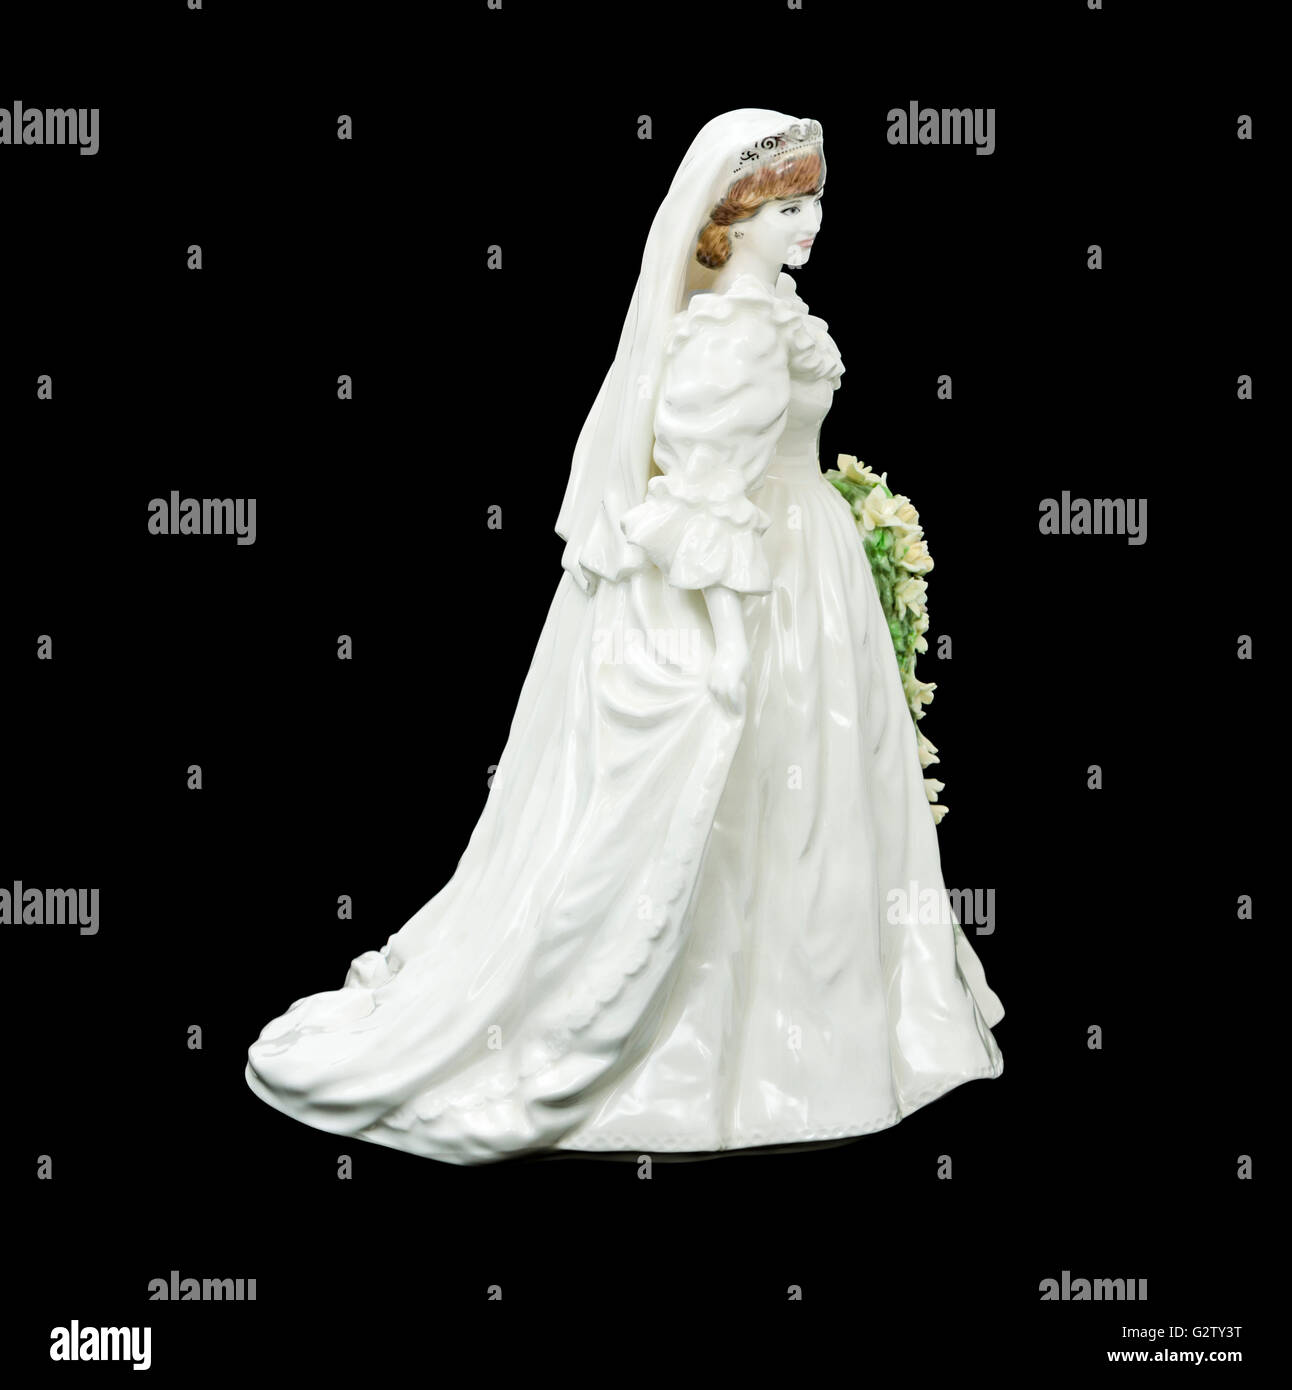 Hrh Princess Diana Of Wales In Her Wedding Dress A Porcelain